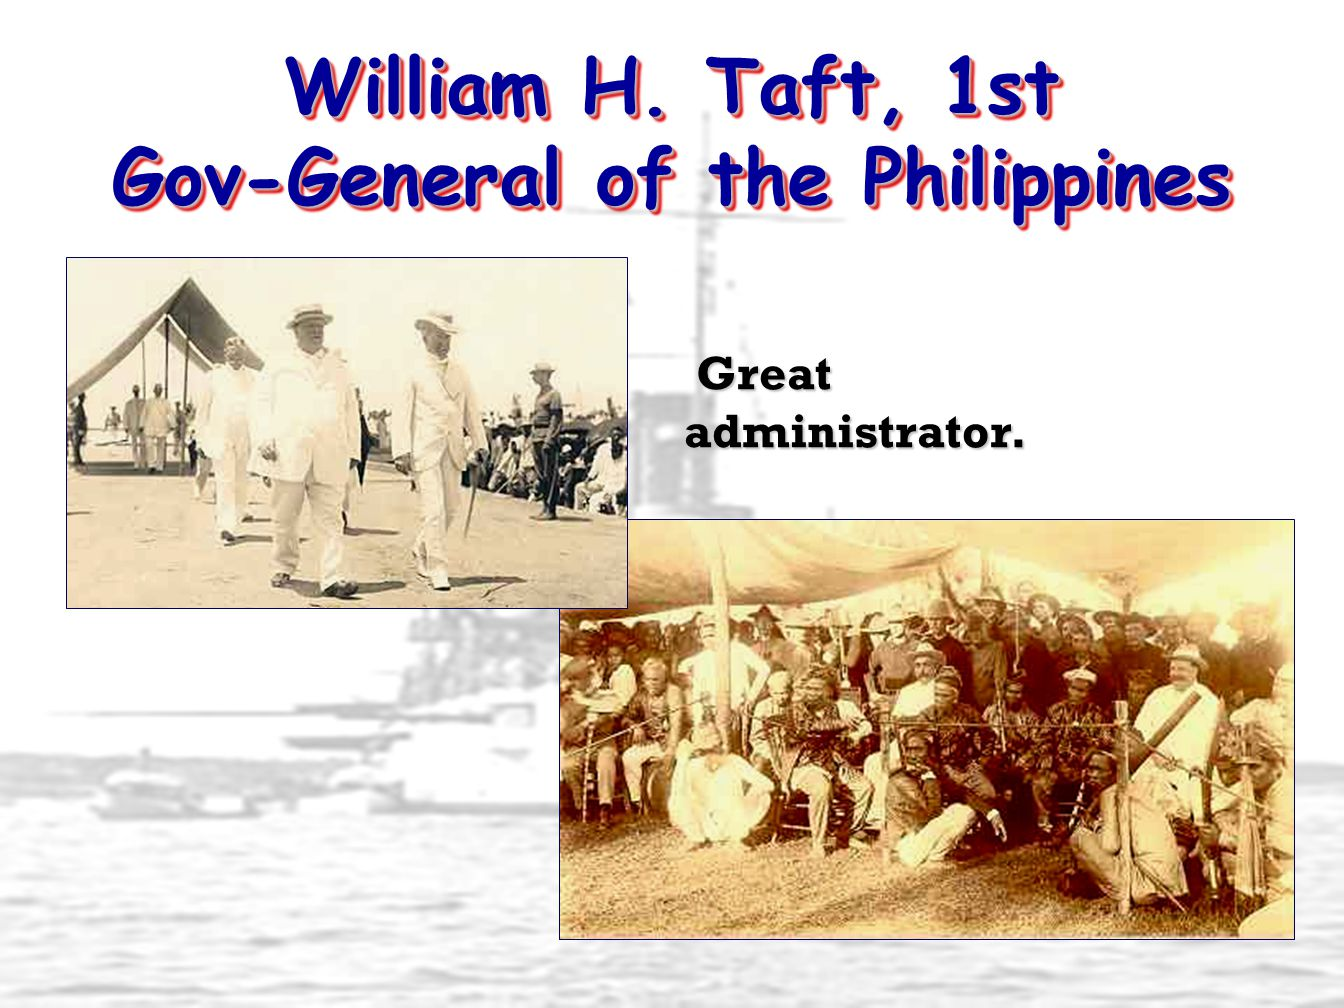 William H. Taft, 1st Gov-General of the Philippines